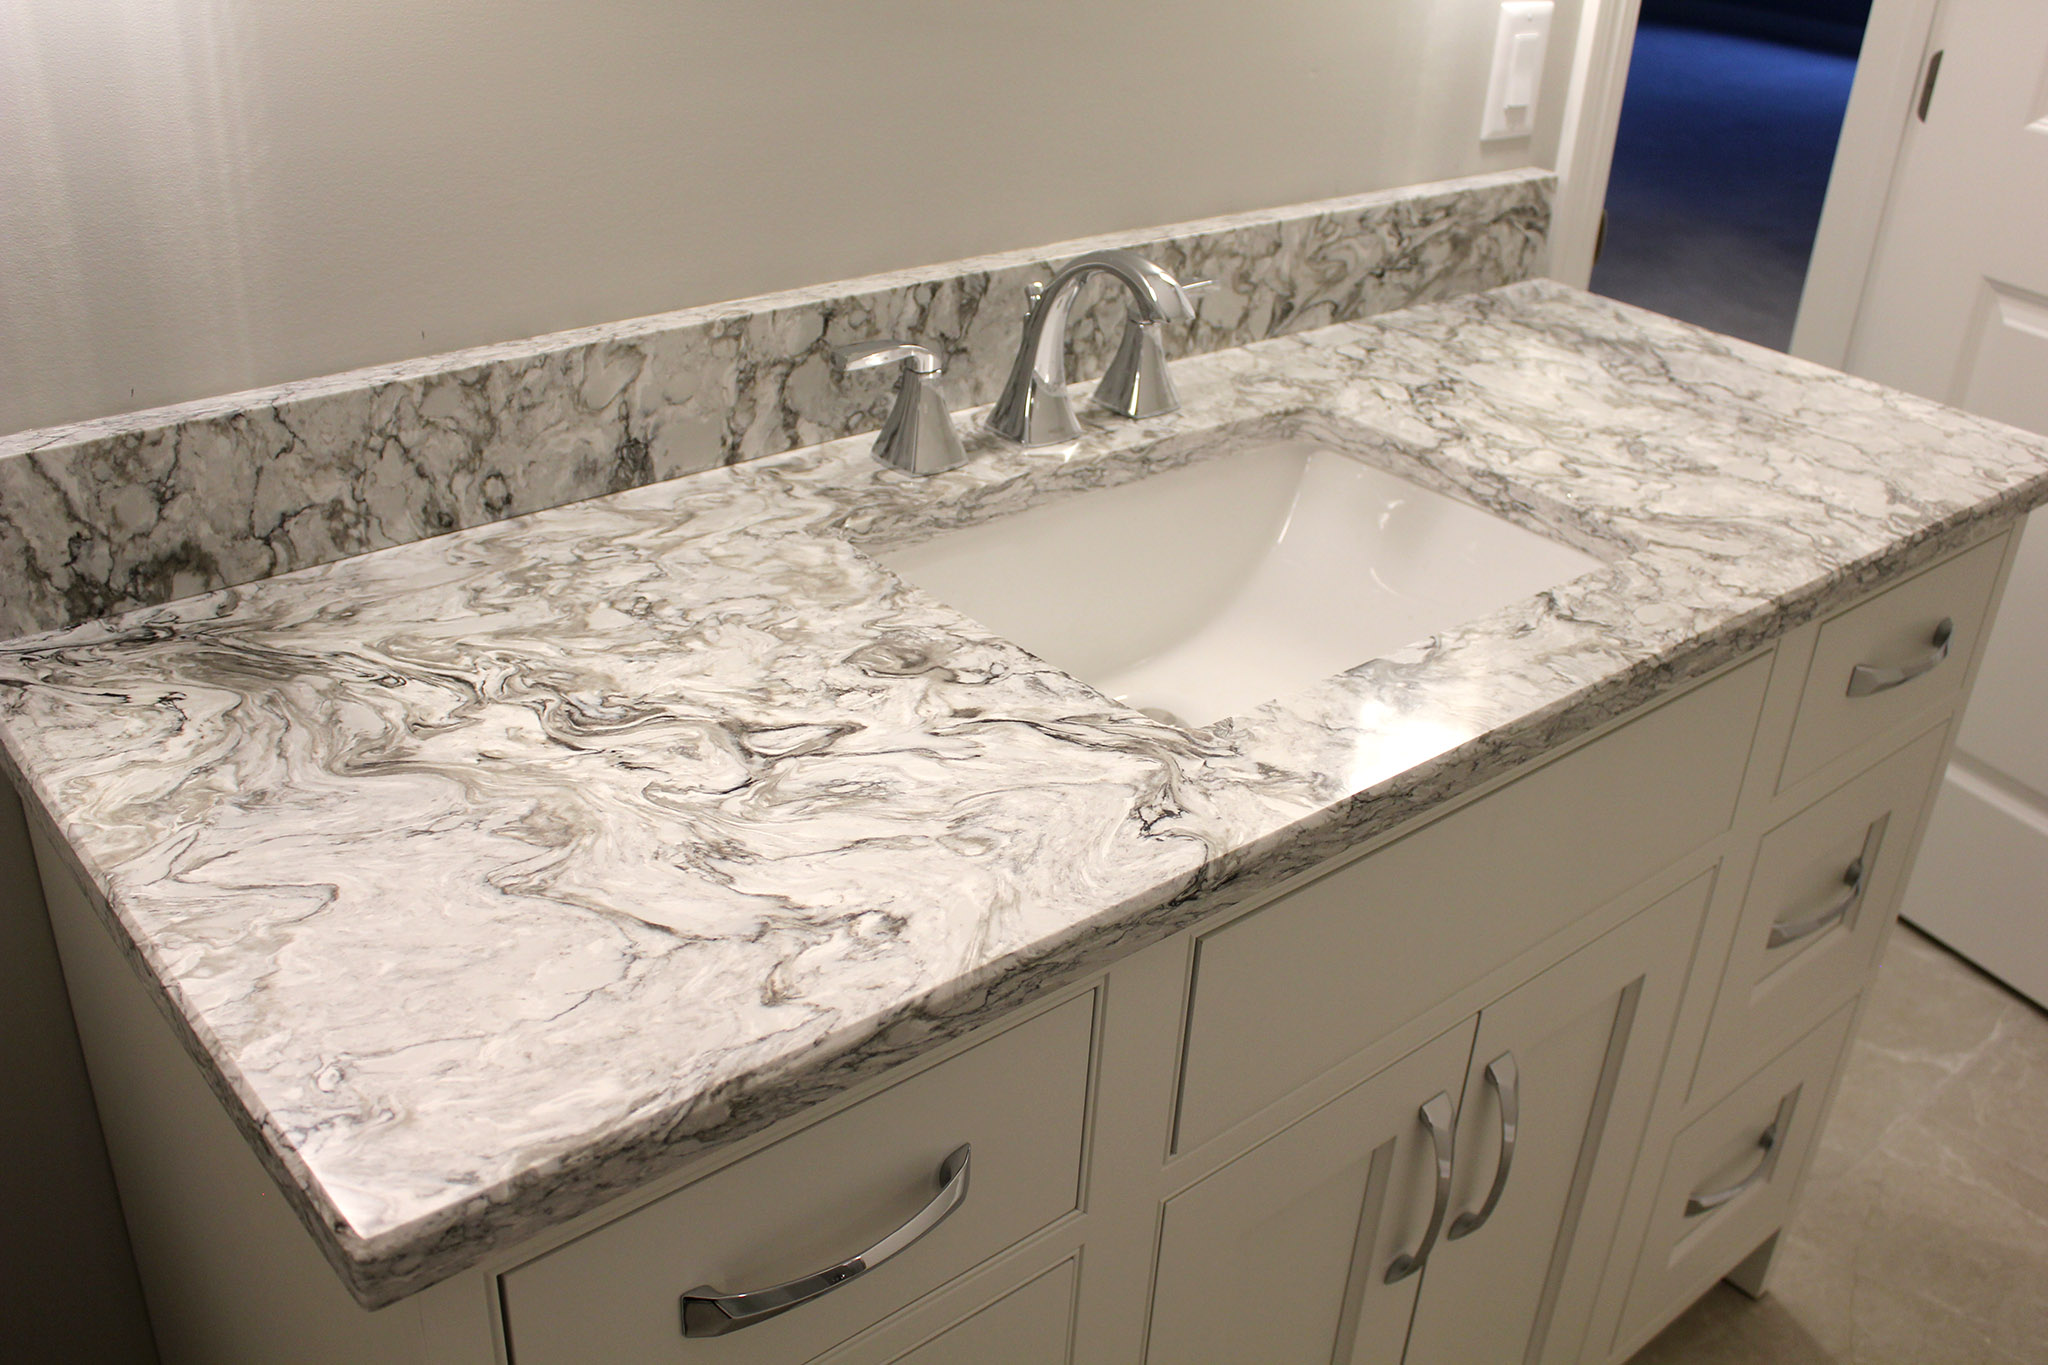 Powder bath vanity with granite countertop and square undermount sink